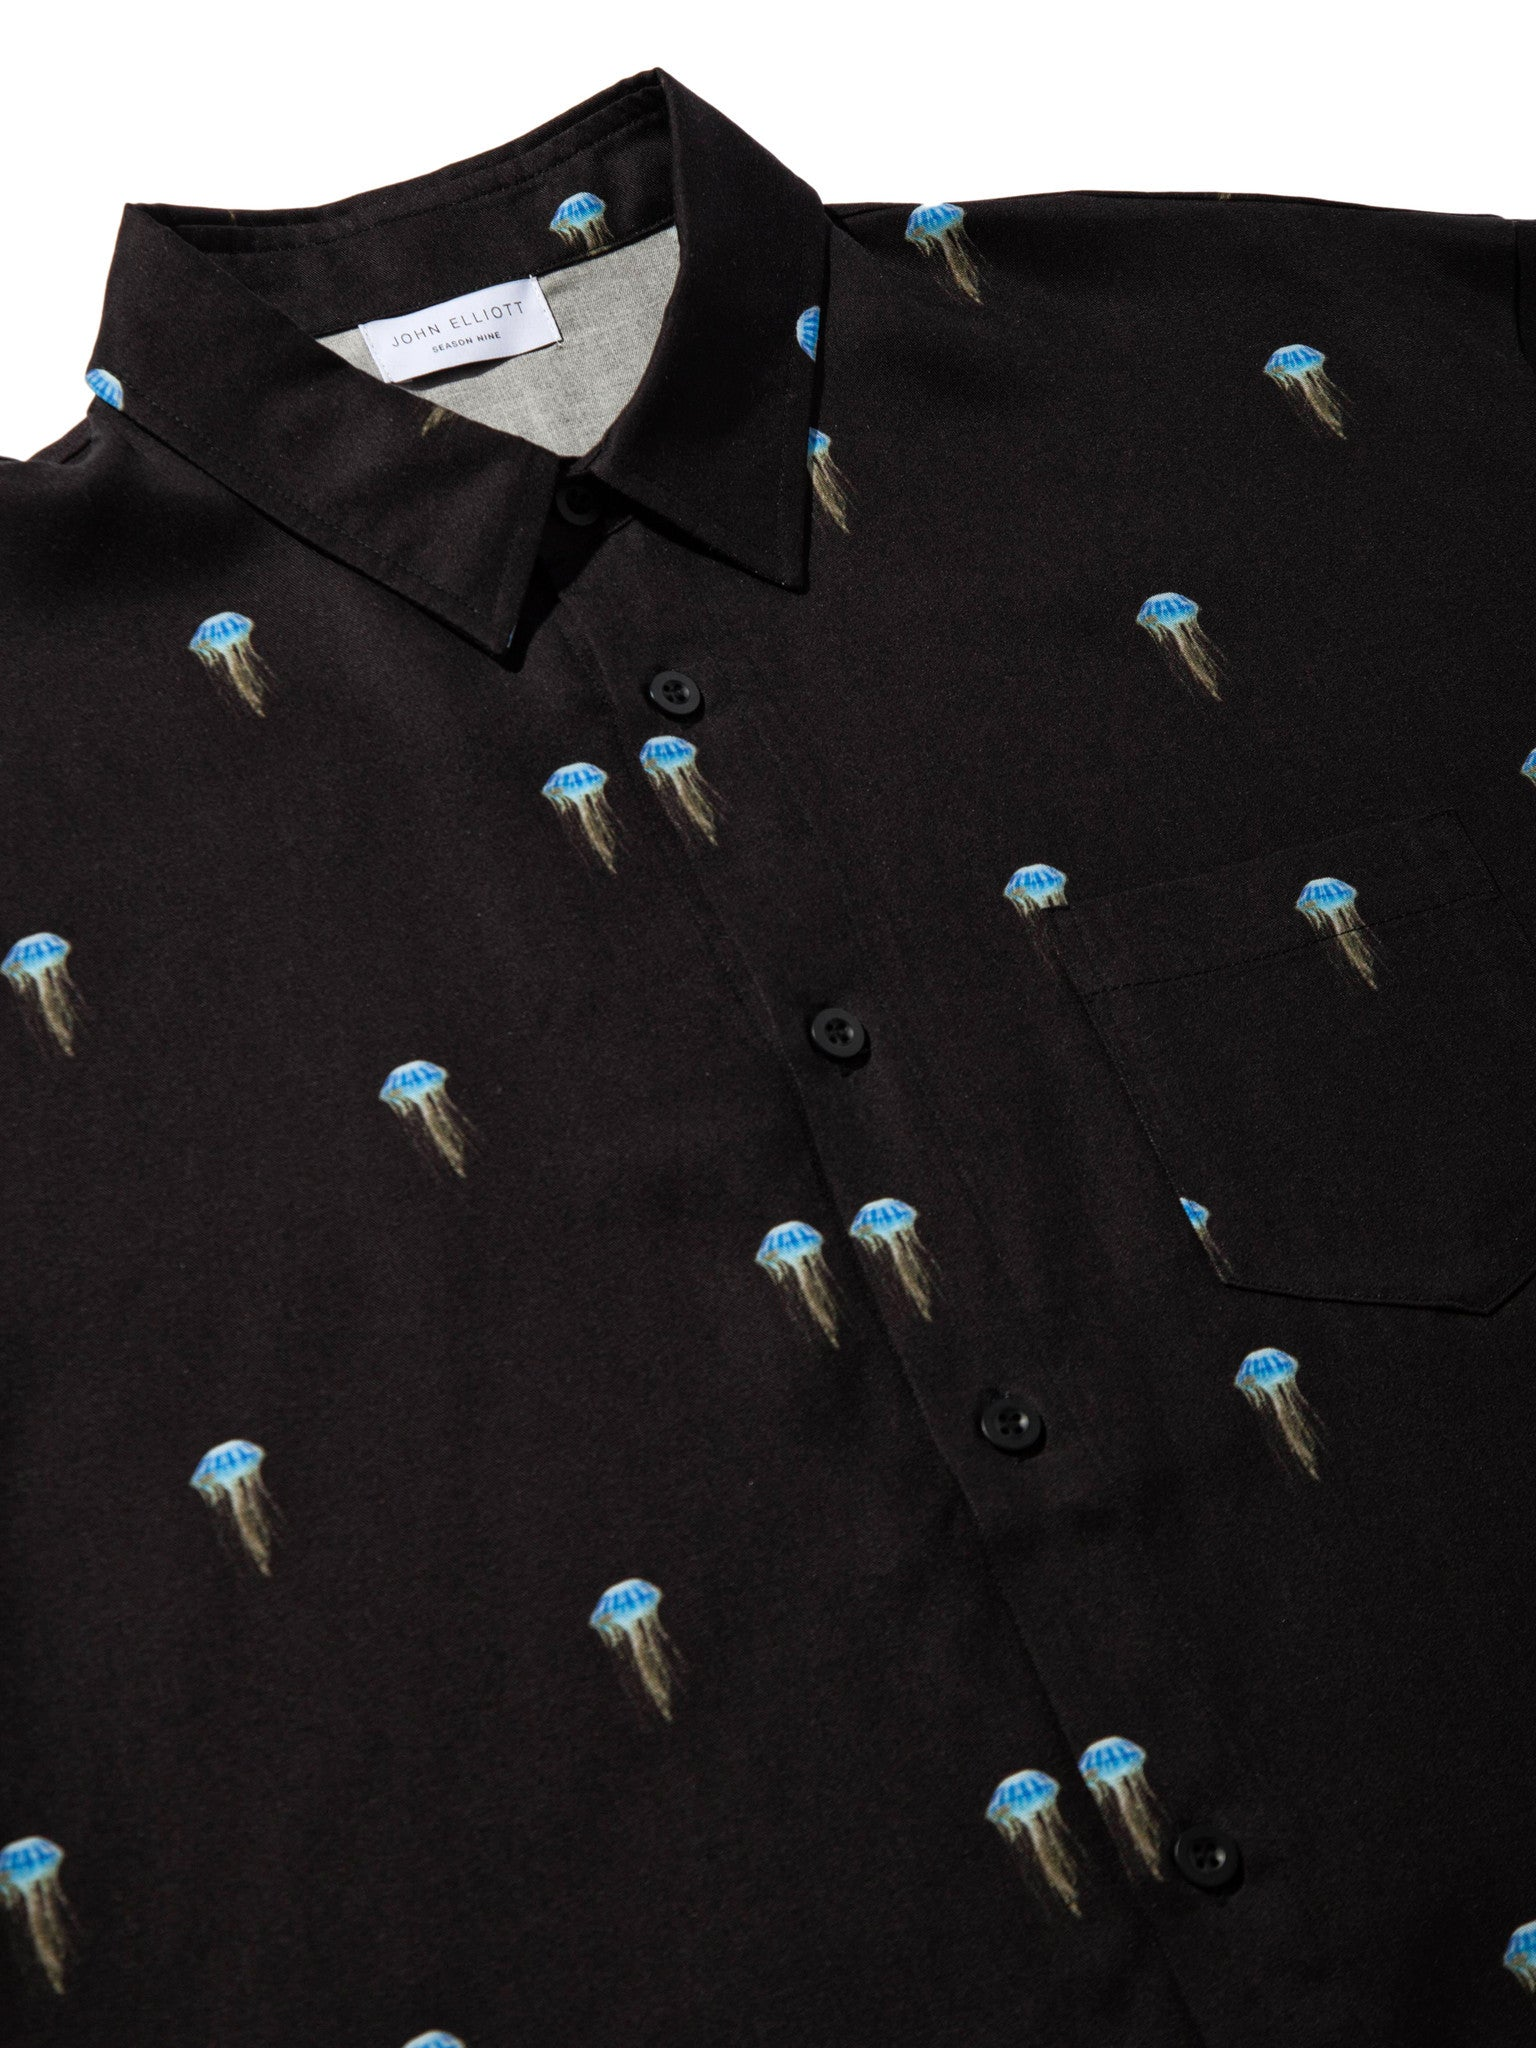 Jellyfish Bowling Shirt 6